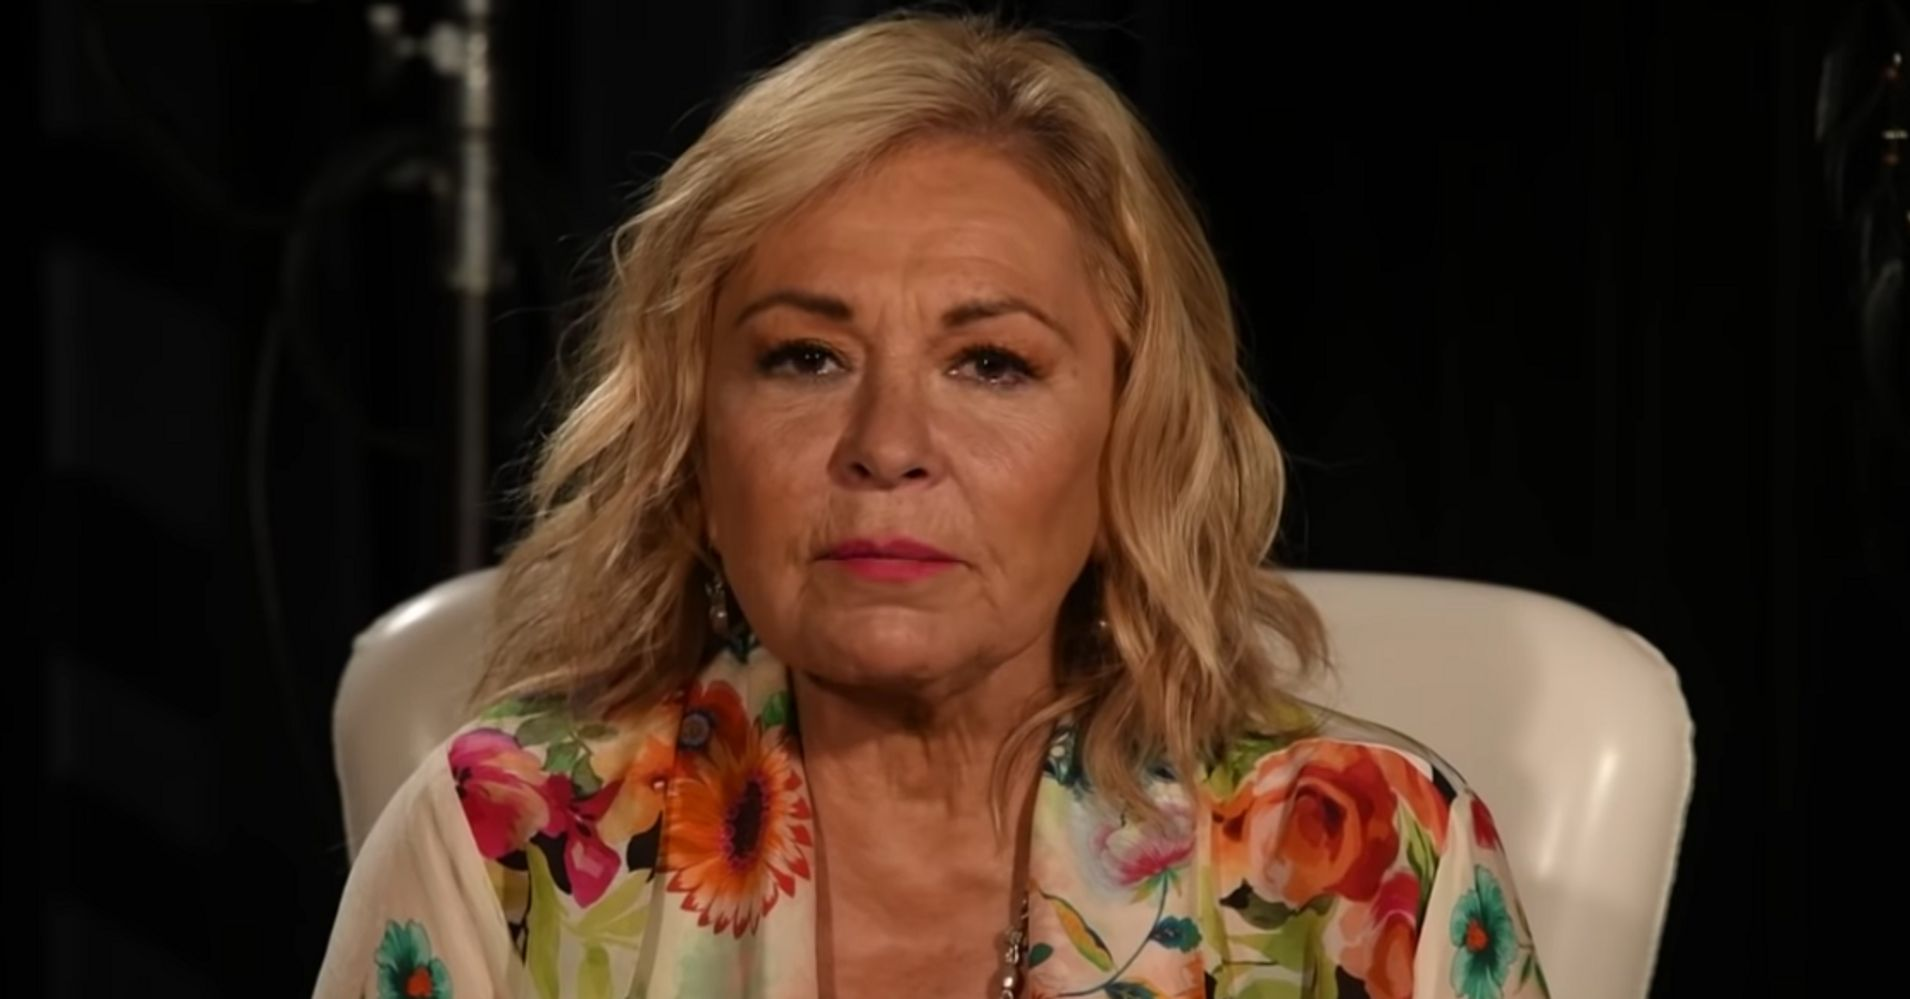 Roseanne Barr: I Was Labeled A Racist Because I Voted For Donald Trump